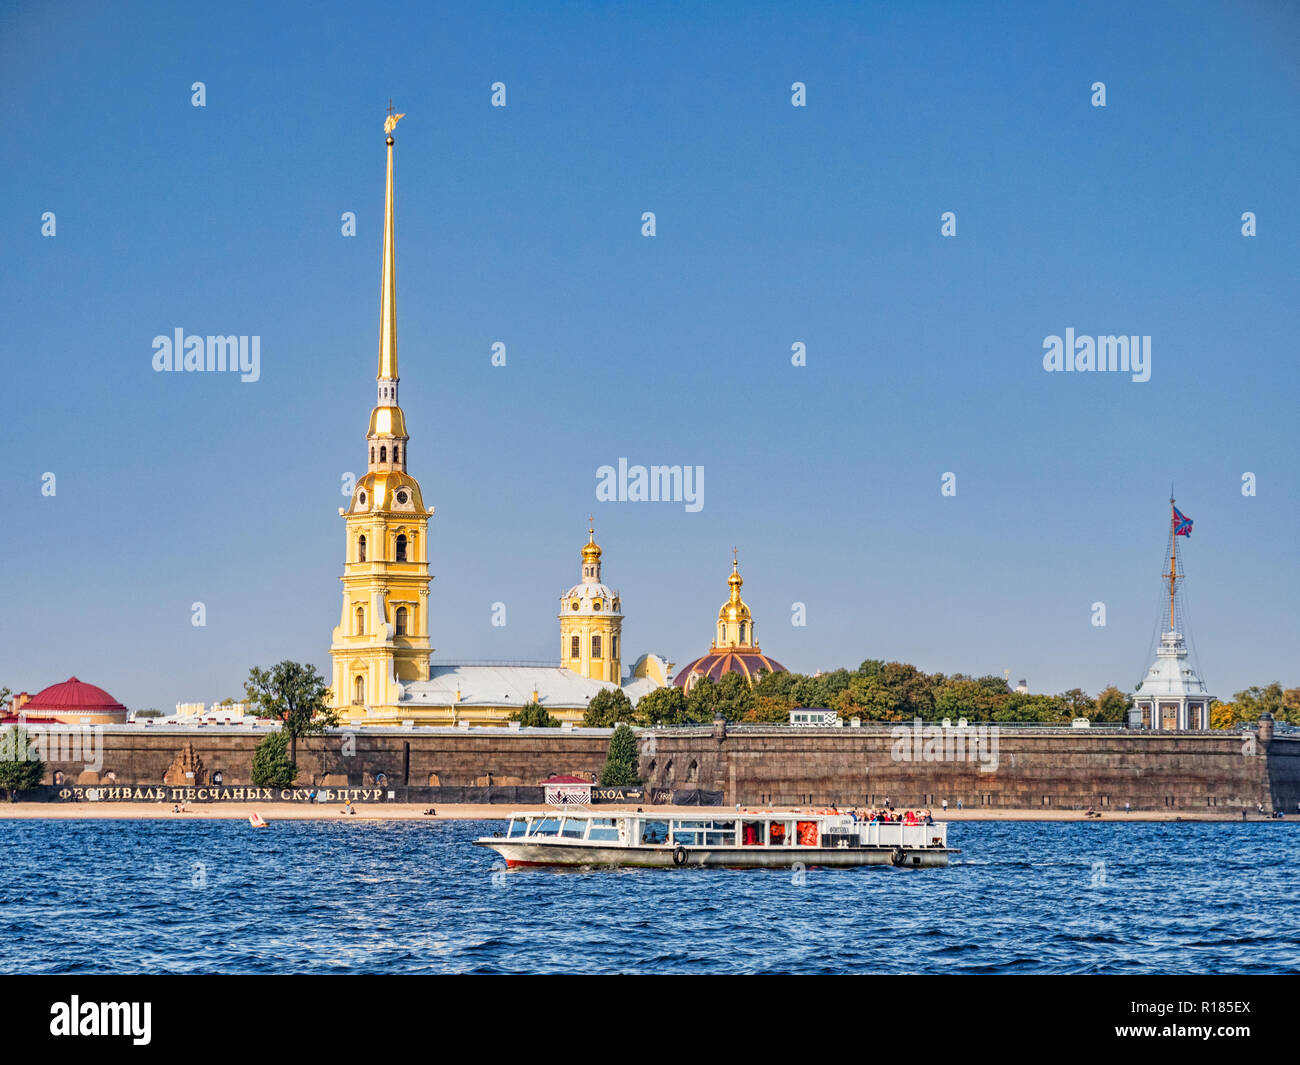 19 September 2018: St Petersburg, Russia - Peter and Paul Fortress, Zayachy Island in the River Neva, from the river. - Stock Image